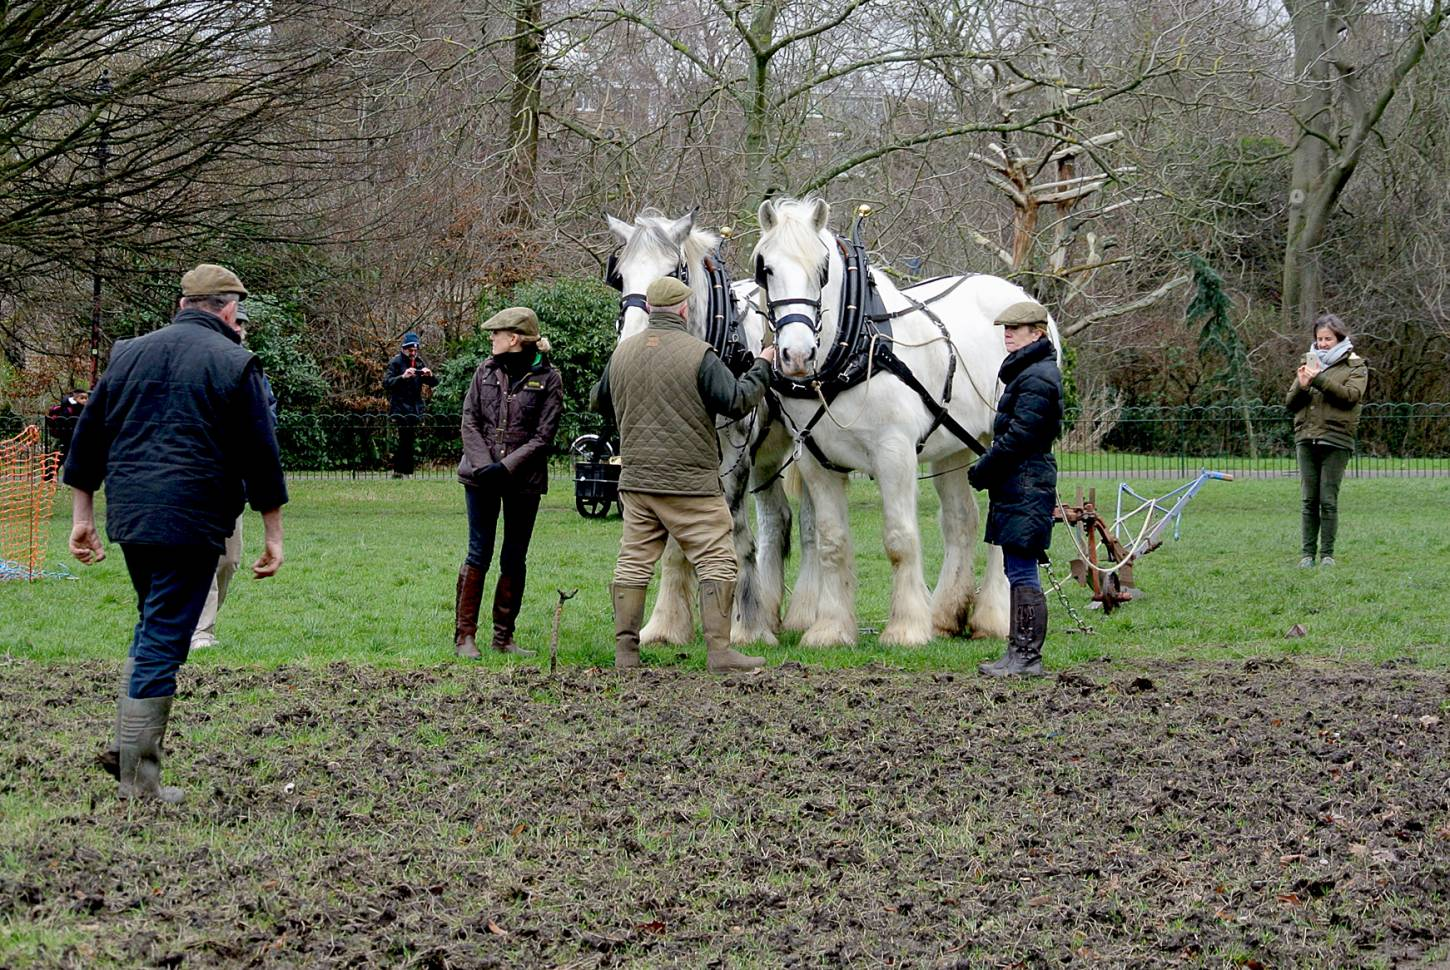 Shire horses, Heath and Nobby with ploughman Tom Nixon from <a href='http://www.operationcentaur.com/' target='_blank'>Operation Centaur</a> come to plough the <a href='https://twitter.com/ruskinparkse5?lang=en' target='_blank'>Ruskin Park</a> wheat patch. Image: Marie Cullen - 12:10pm&nbsp;9<sup>th</sup>&nbsp;Feb.&nbsp;'18